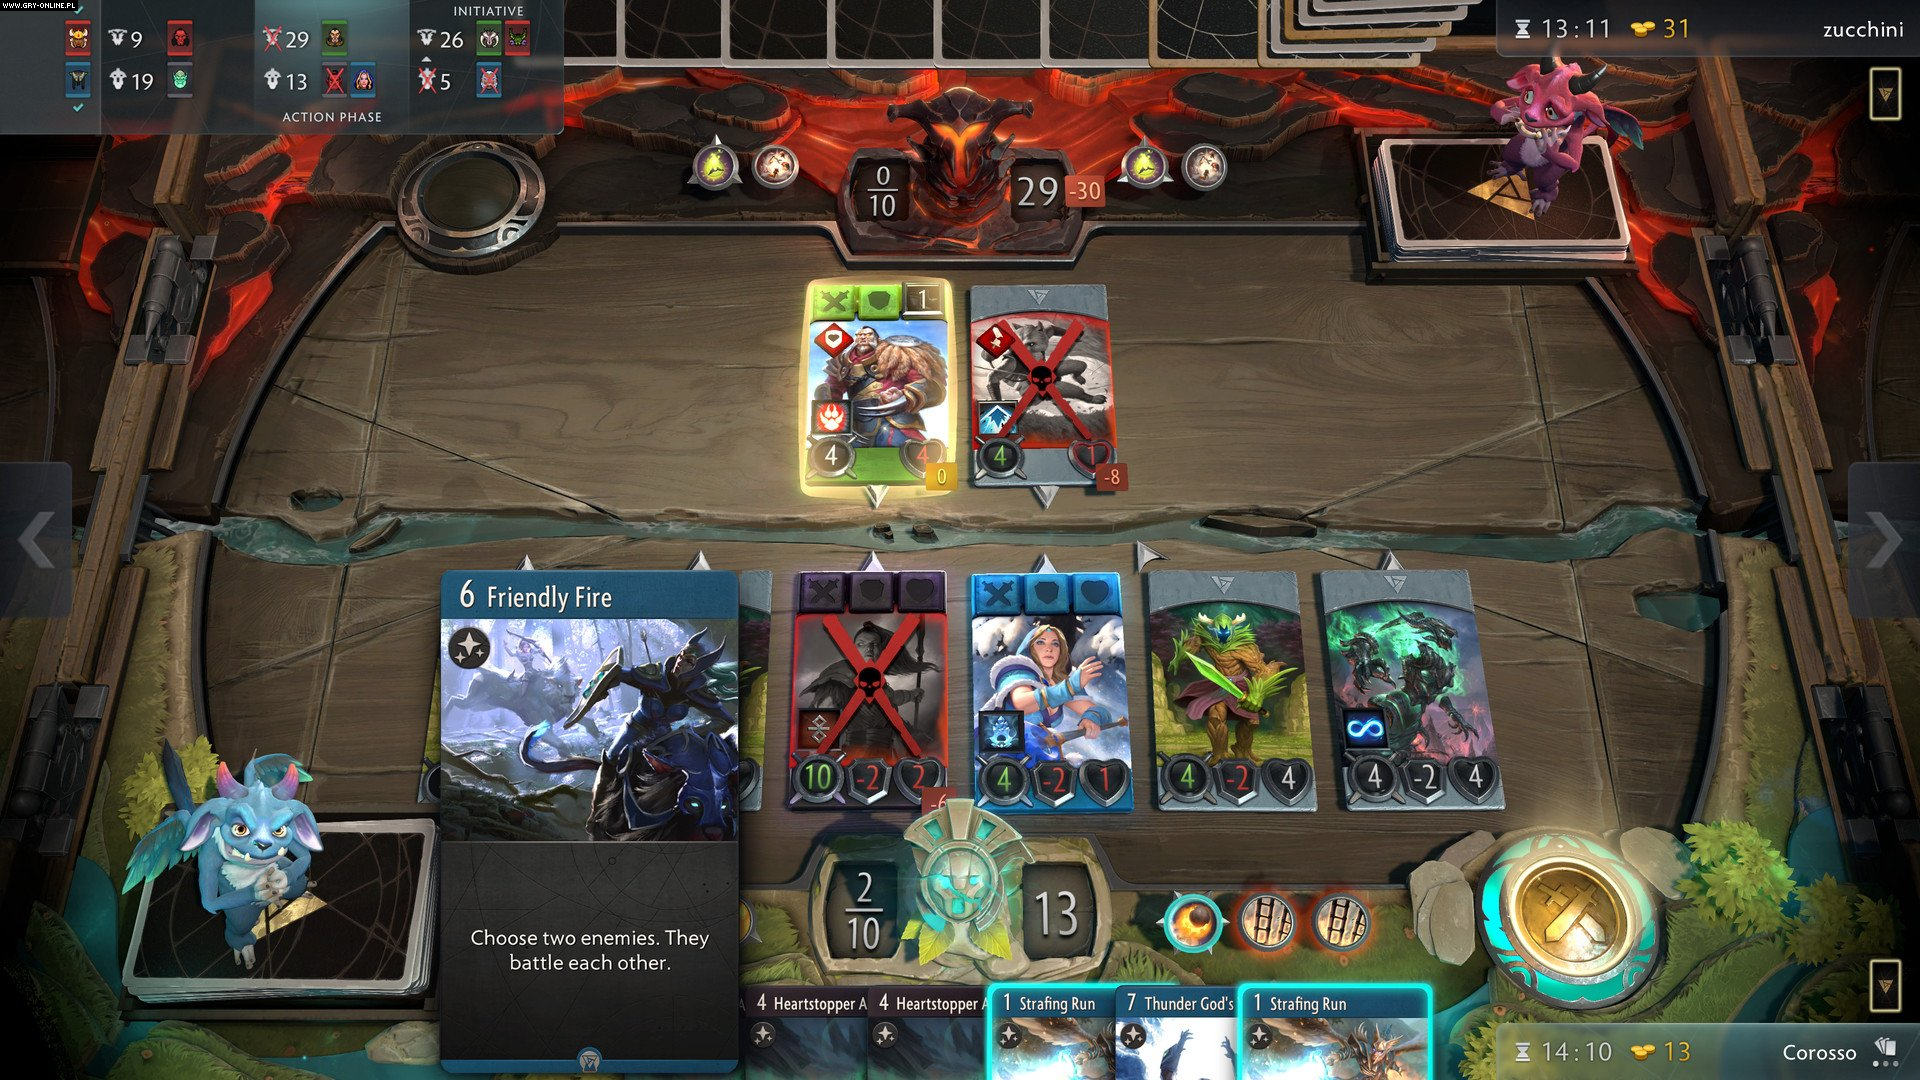 Artifact PC, AND, iOS Games Image 4/9, Valve Corporation